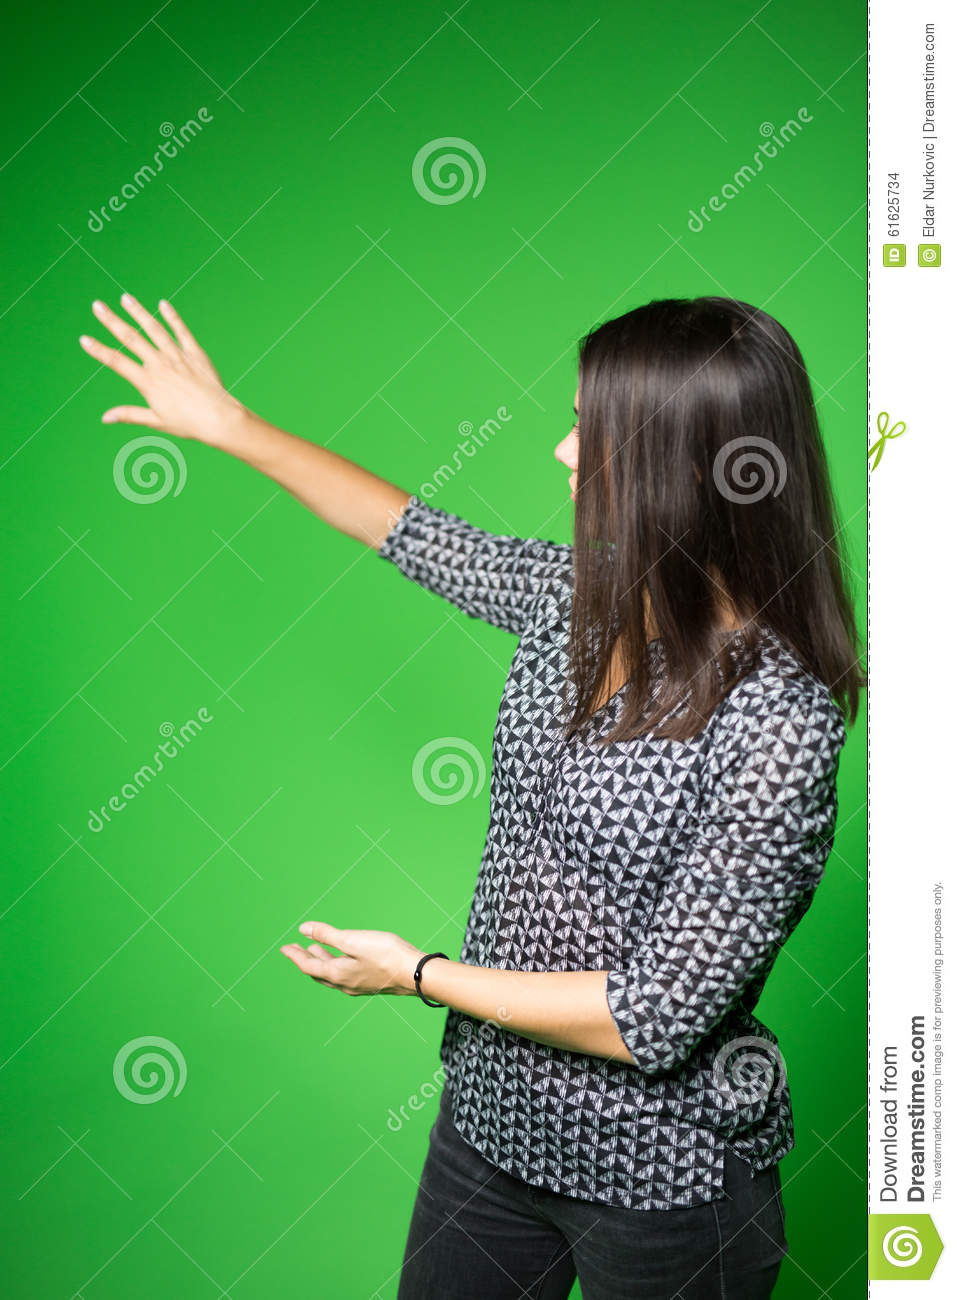 TV weather news reporter at work.News anchor presenting the world weather report.Television presenter recording in a green screen